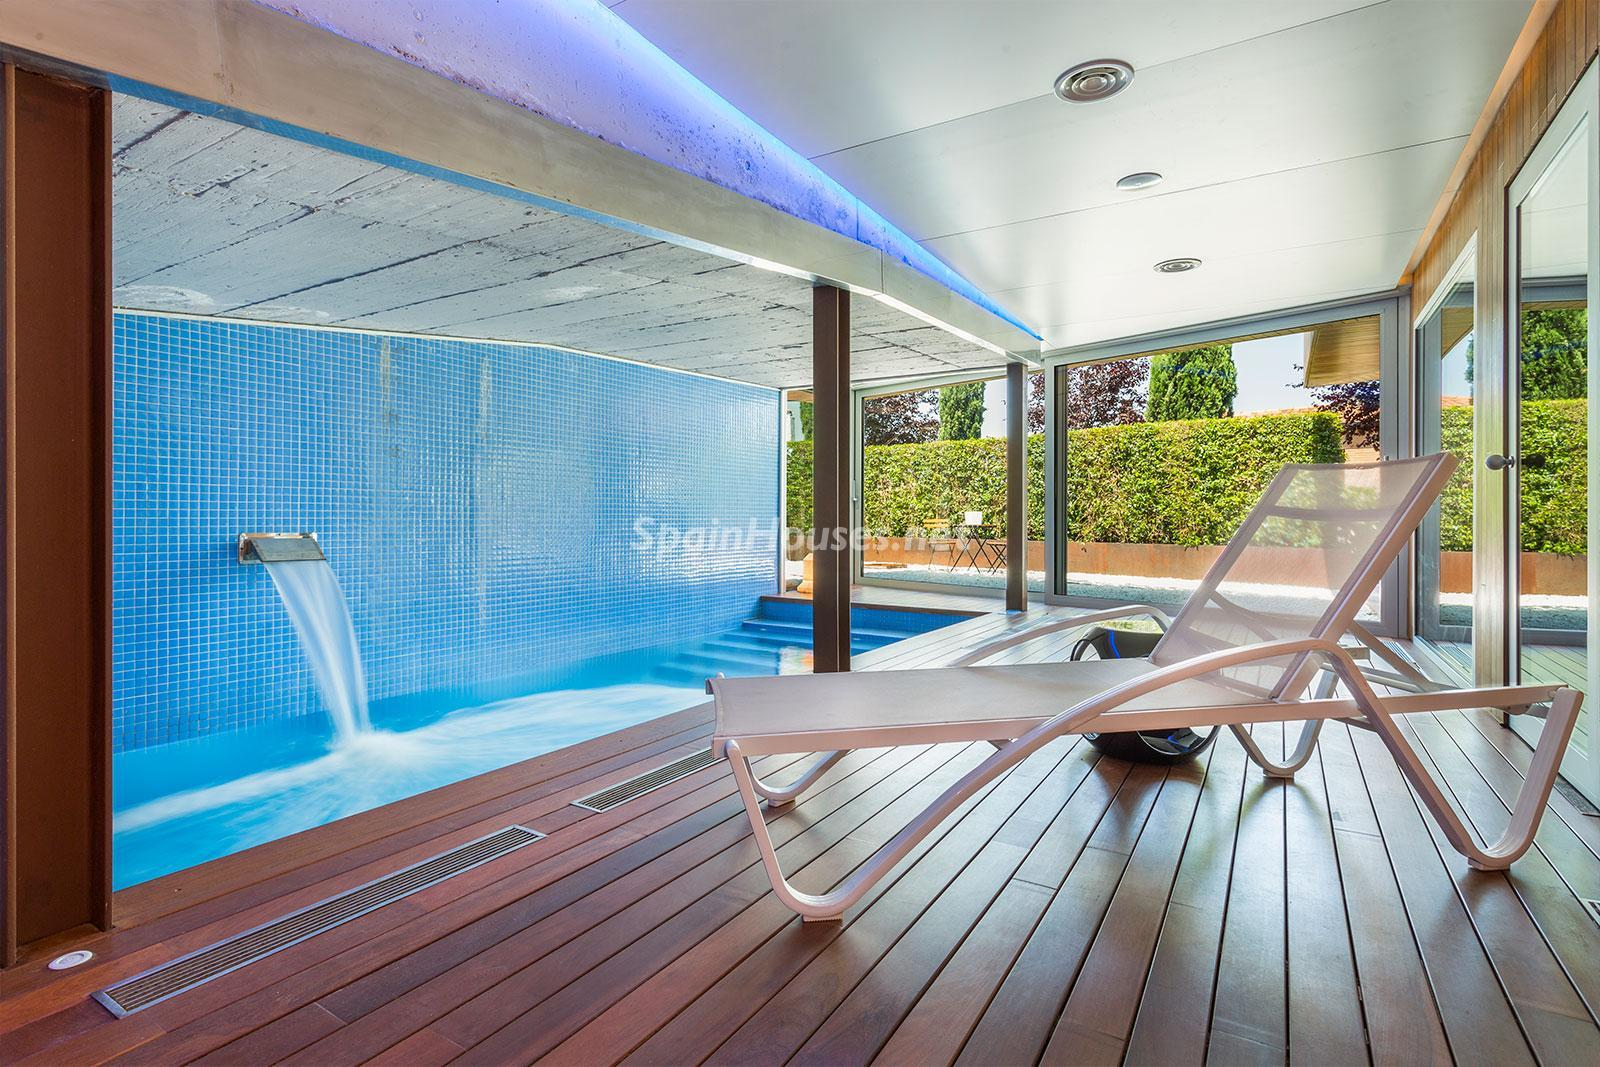 12. House for sale in Barcelona city - Superb 5 bed home in Barcelona features 2 swimming pools and a huge garden